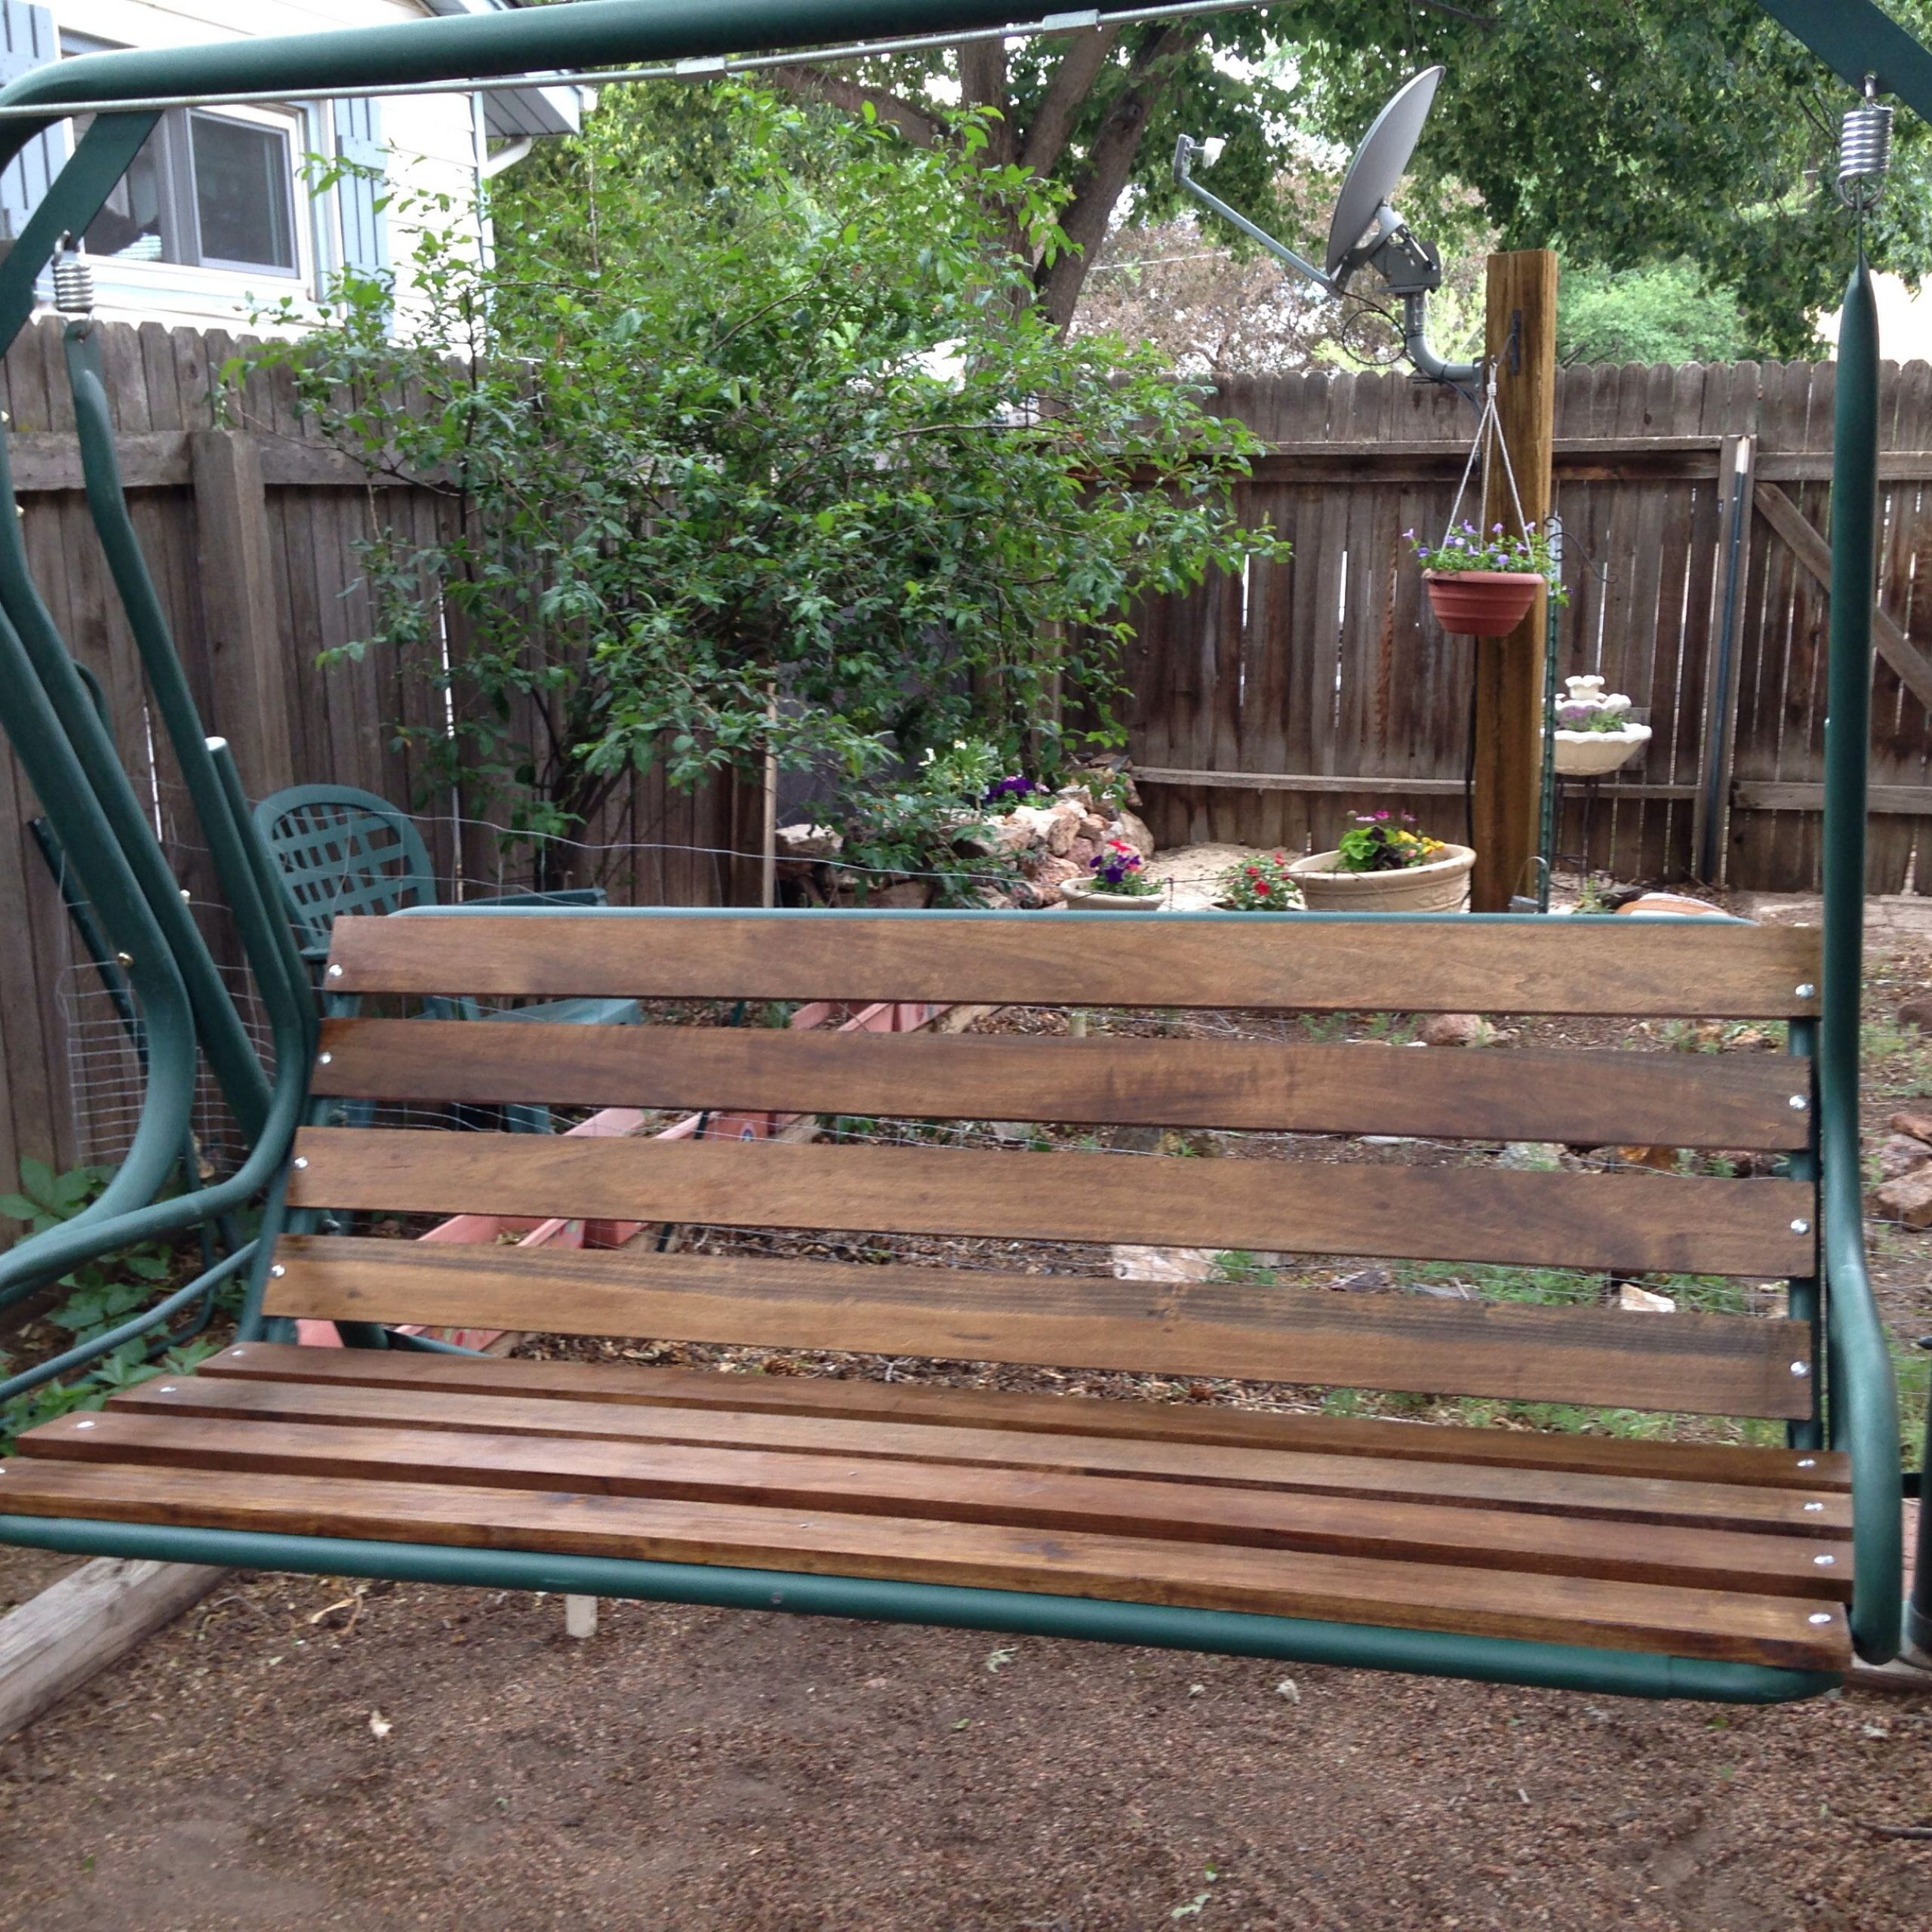 Finished Swing   Patio Swing, Diy Patio, Outdoor Projects Inside Canopy Patio Porch Swings With Pillows And Cup Holders (View 24 of 25)